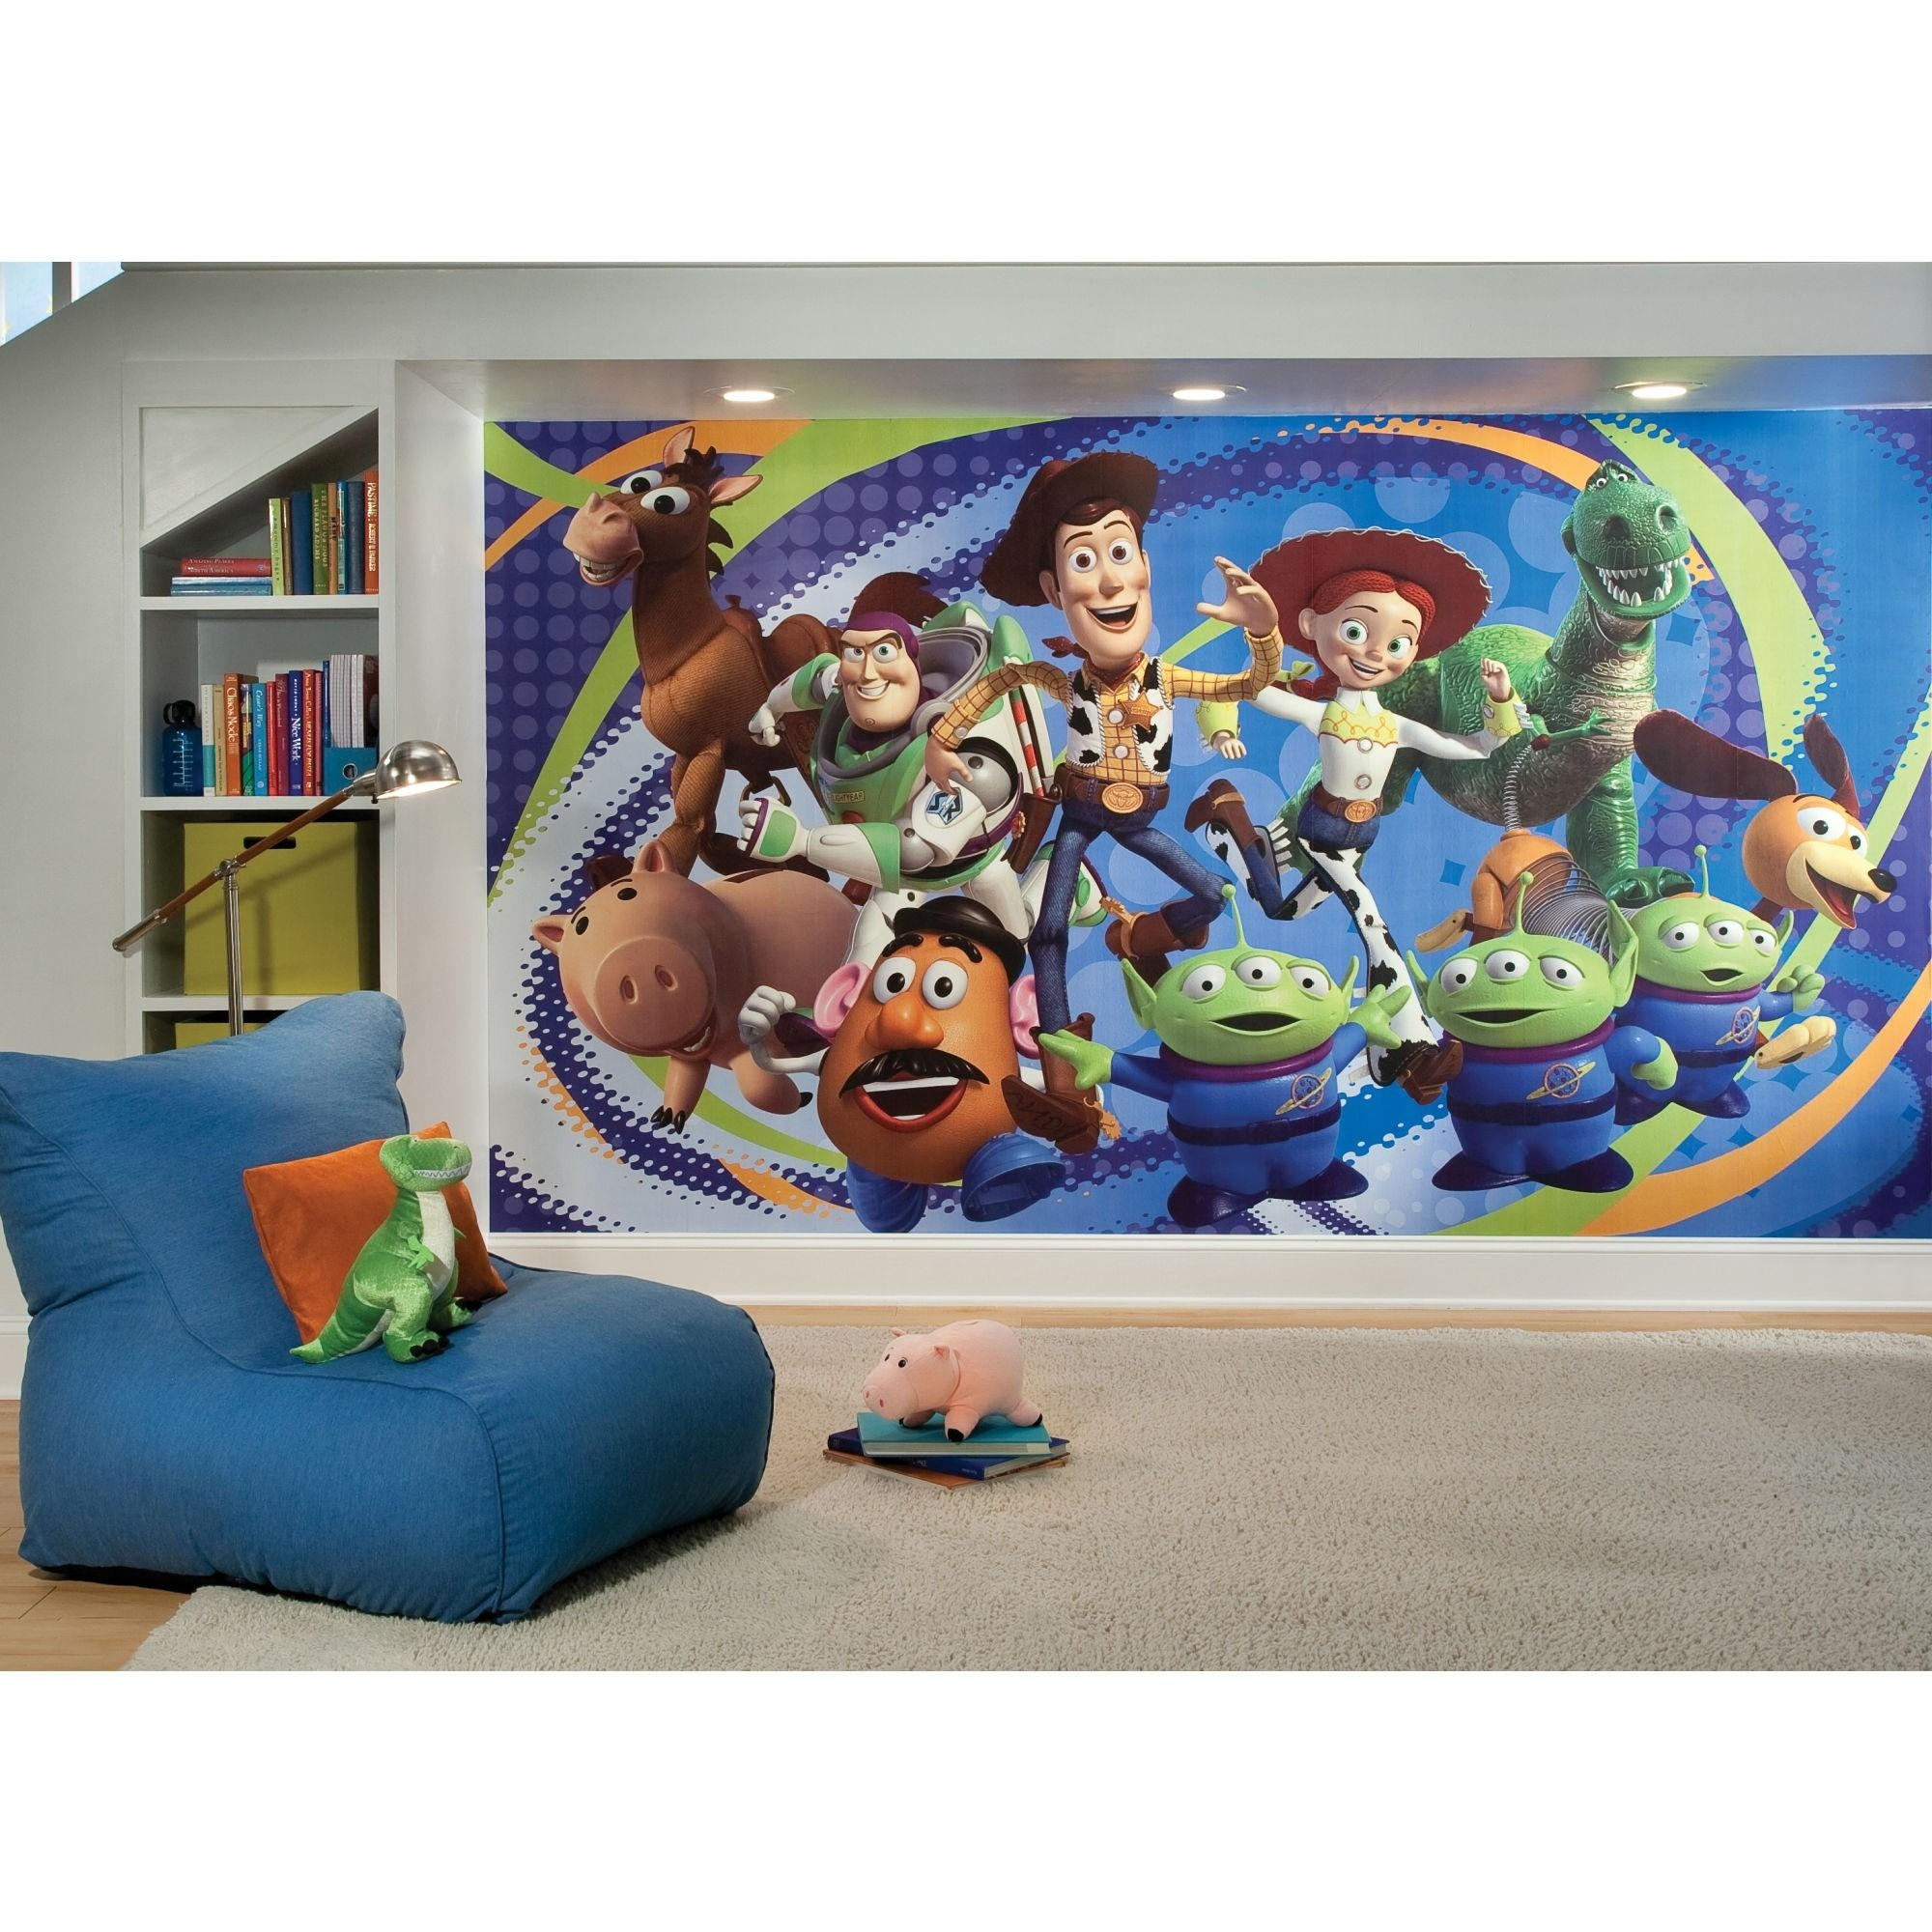 Best Wall Decals Toy Story Photos 2017 – Blue Maize With Regard To Toy Story Wall Stickers (Image 7 of 20)